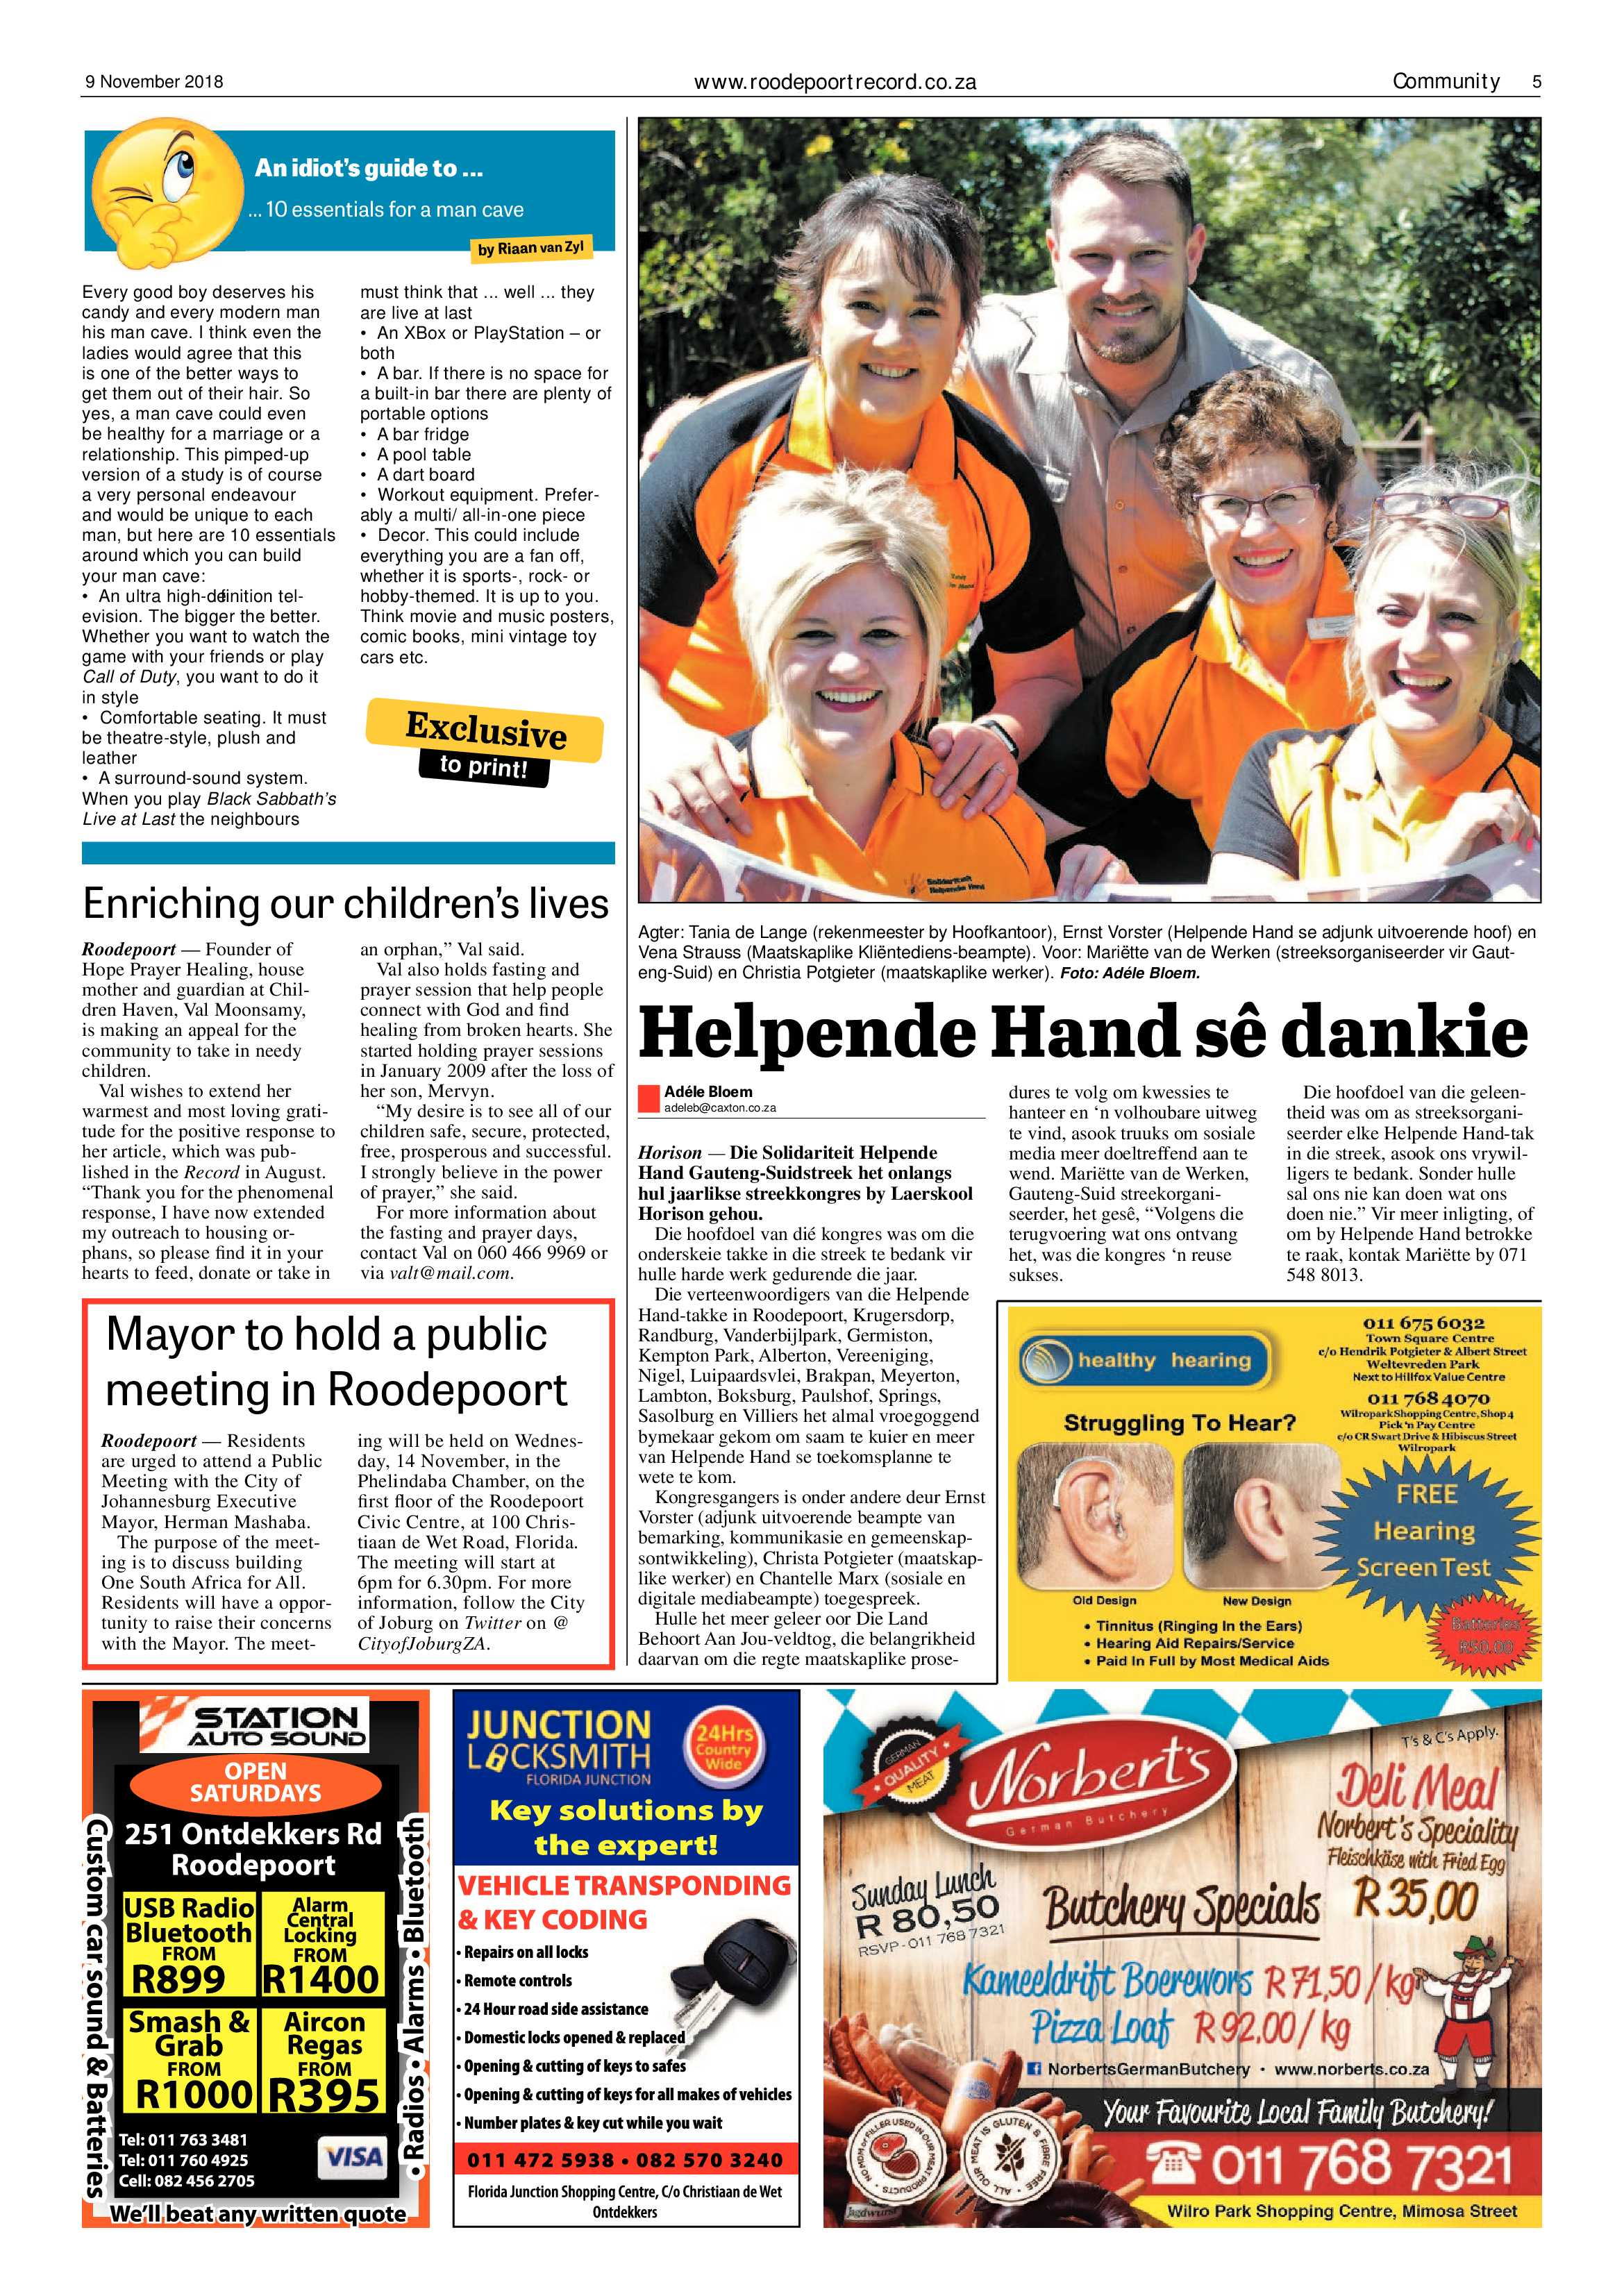 roodepoort-record-9-november-2018-epapers-page-5